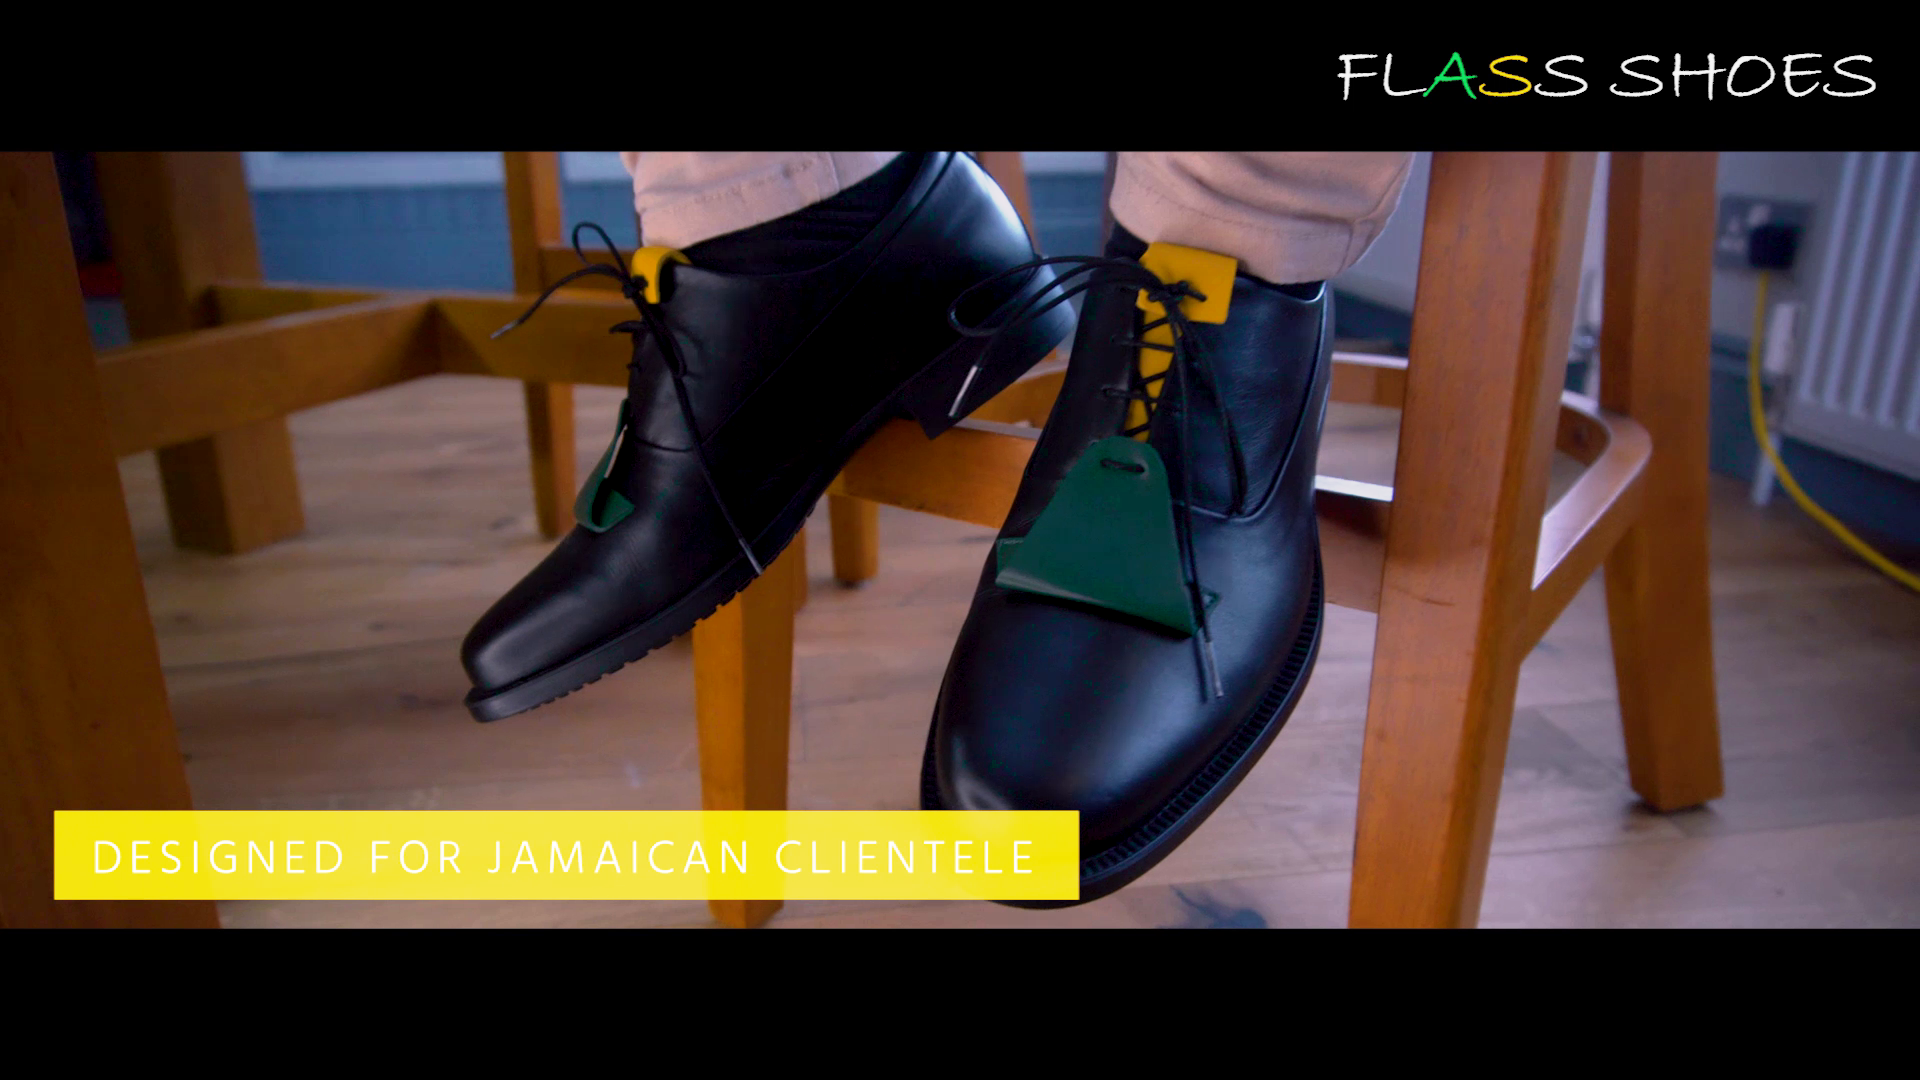 FLASS SHOES LIMITED